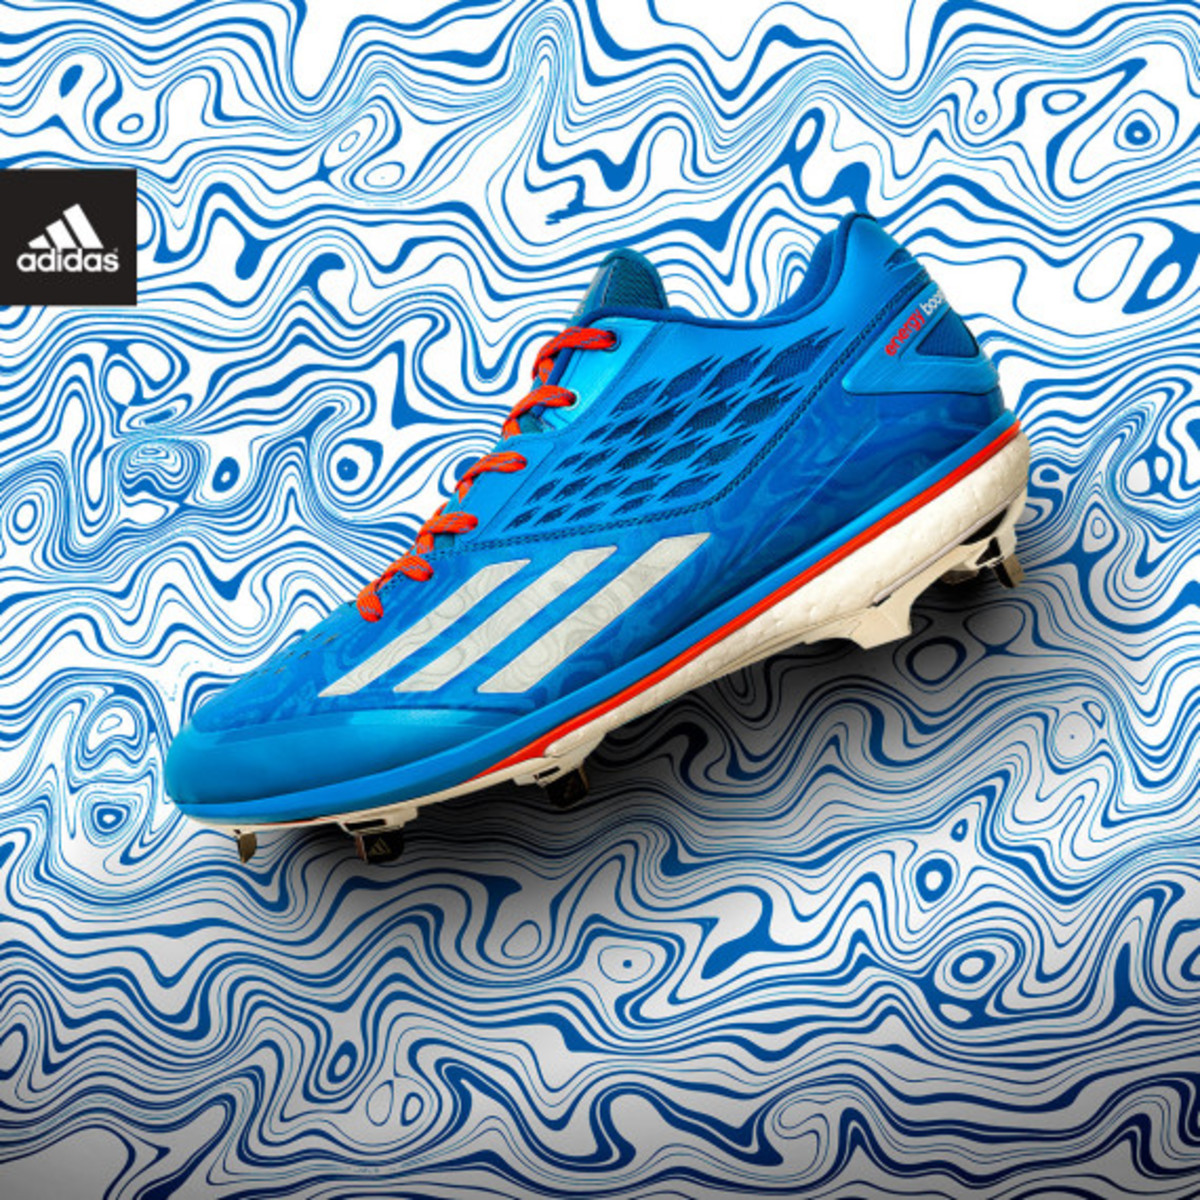 adidas-unveils-mlb-all-star-energy-boost-cleat-04